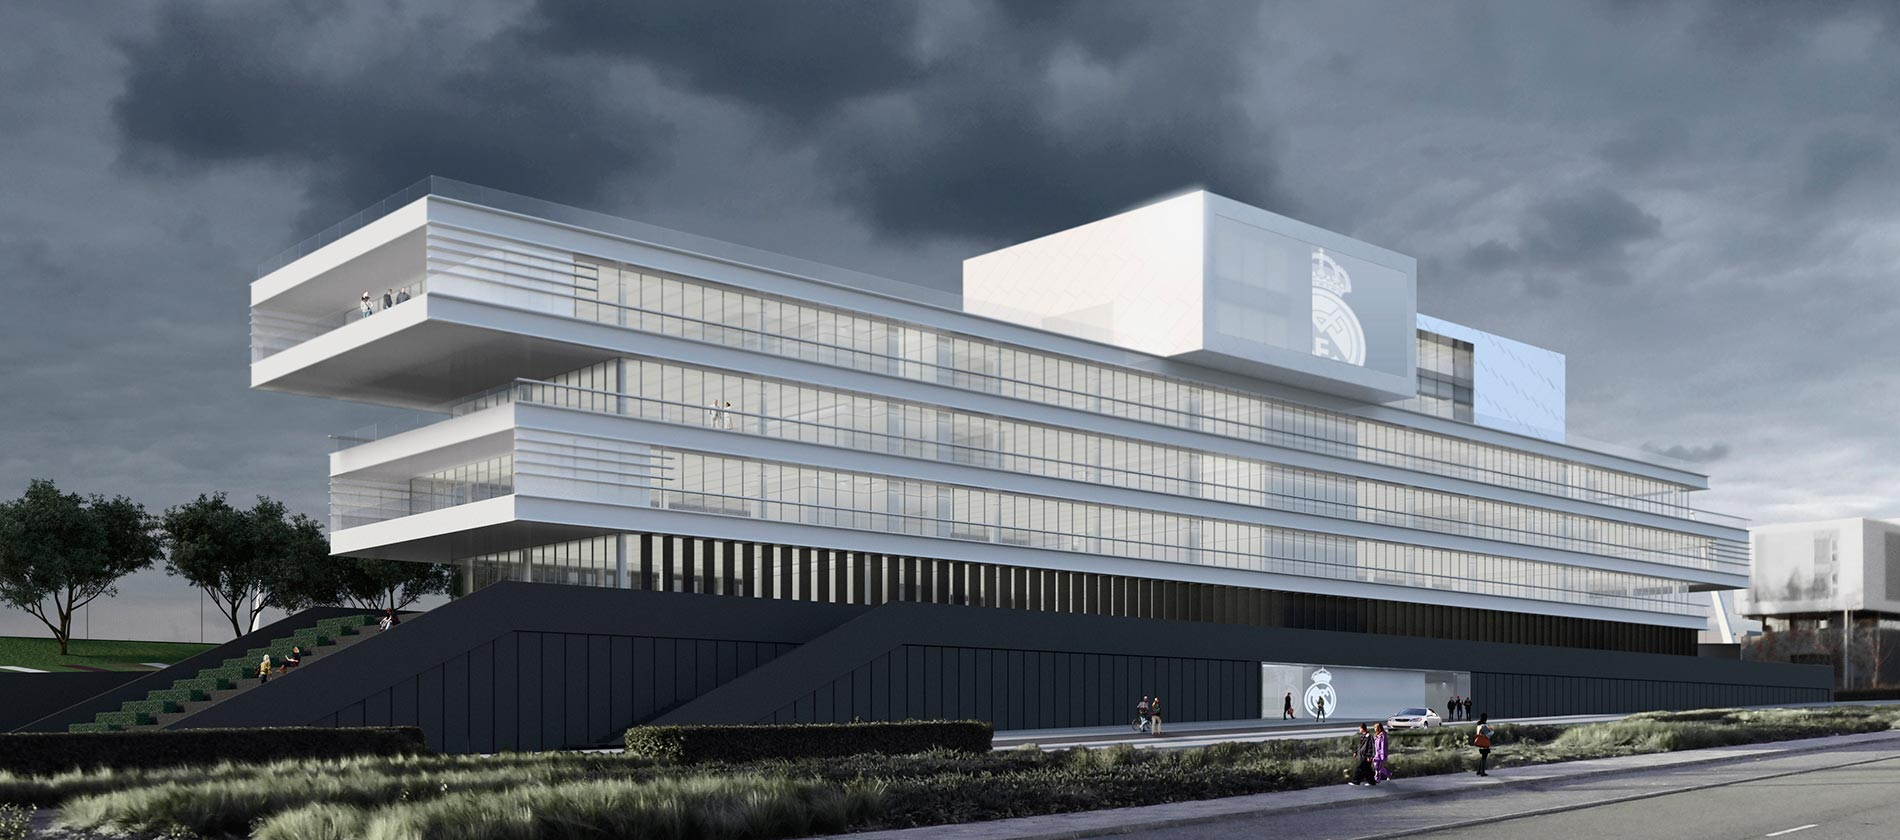 Competition real madrid headquarters fenwick iribarren for Real madrid oficinas telefono